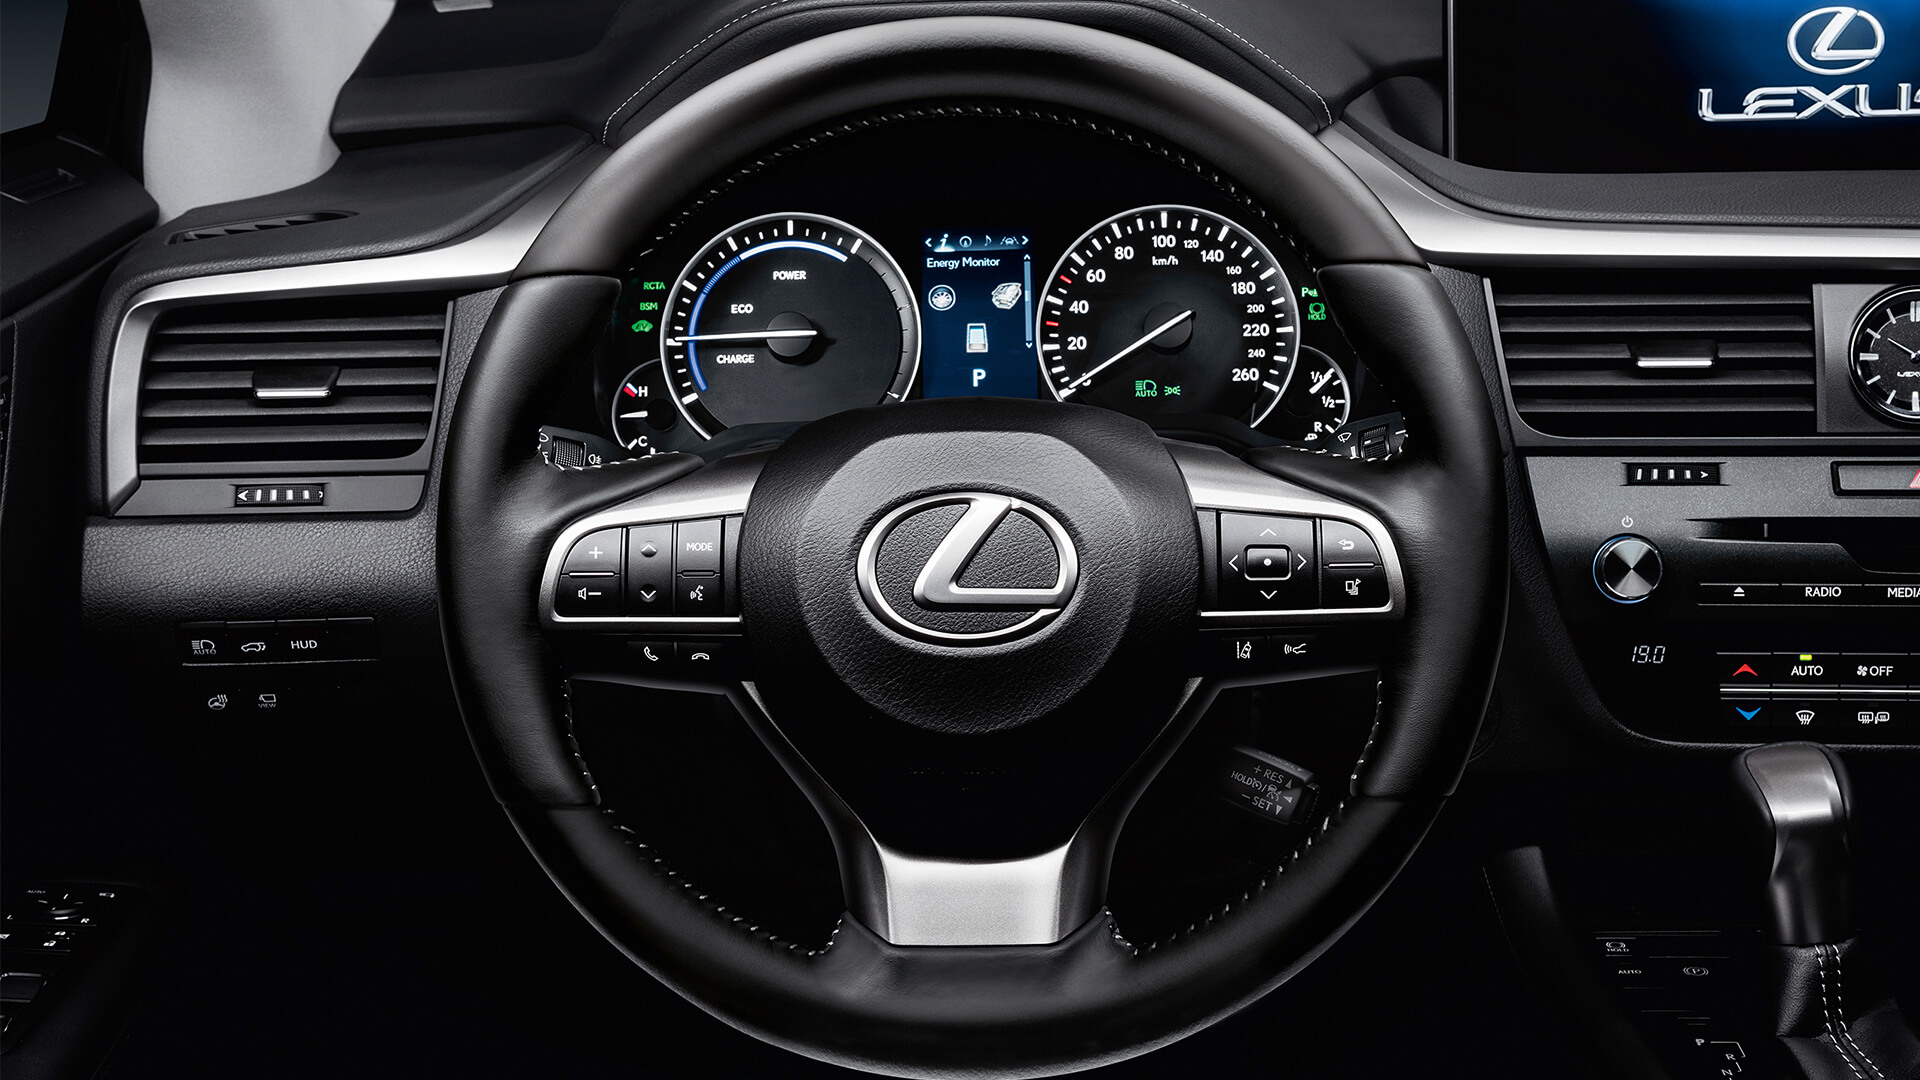 2018 lexus rx l features electric power steering